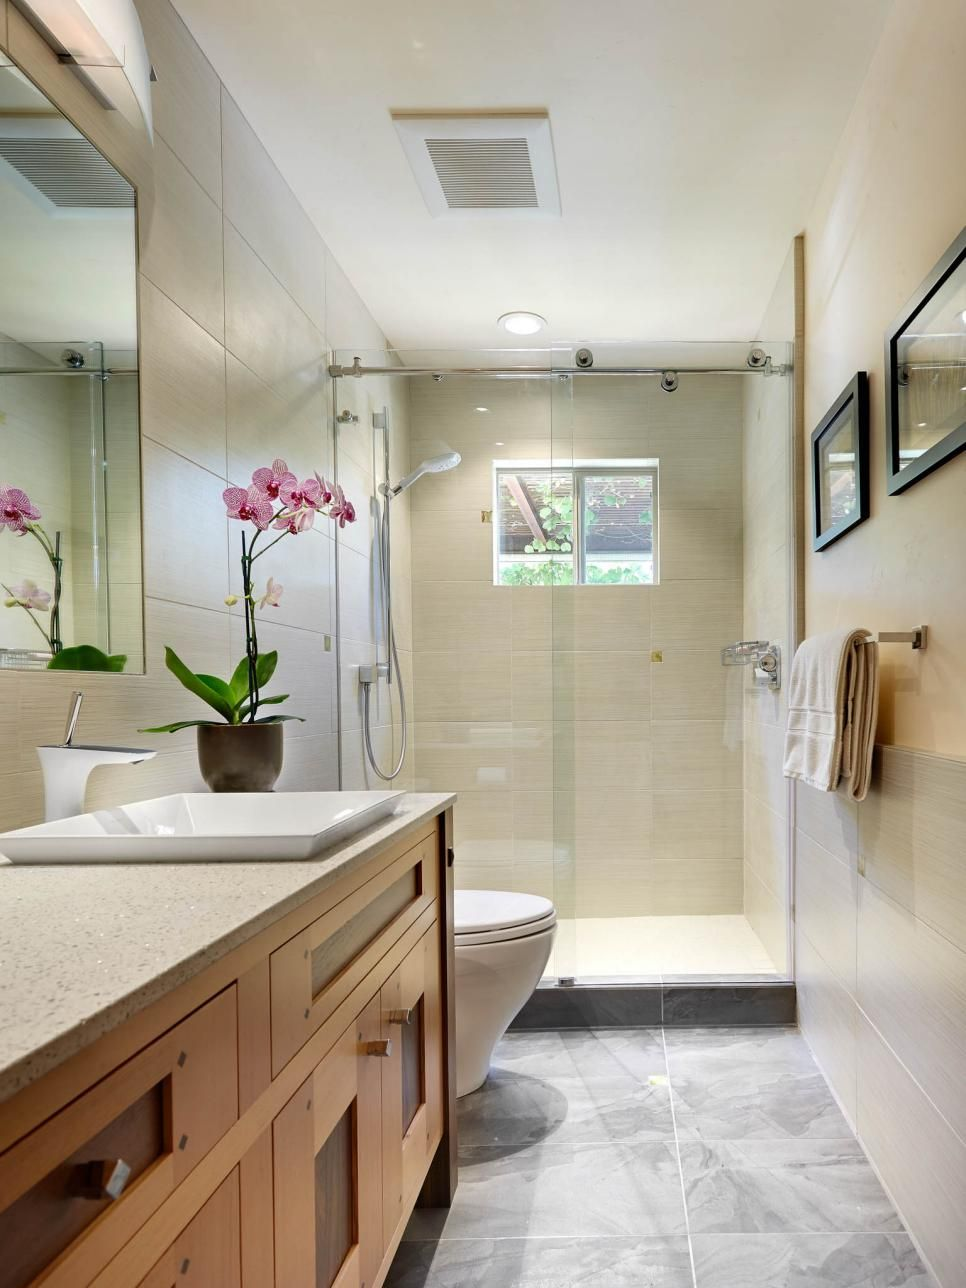 A Gorgeous Craftsman Style Vanity Is The Focal Point Of This Simple,  Elegant Bathroom